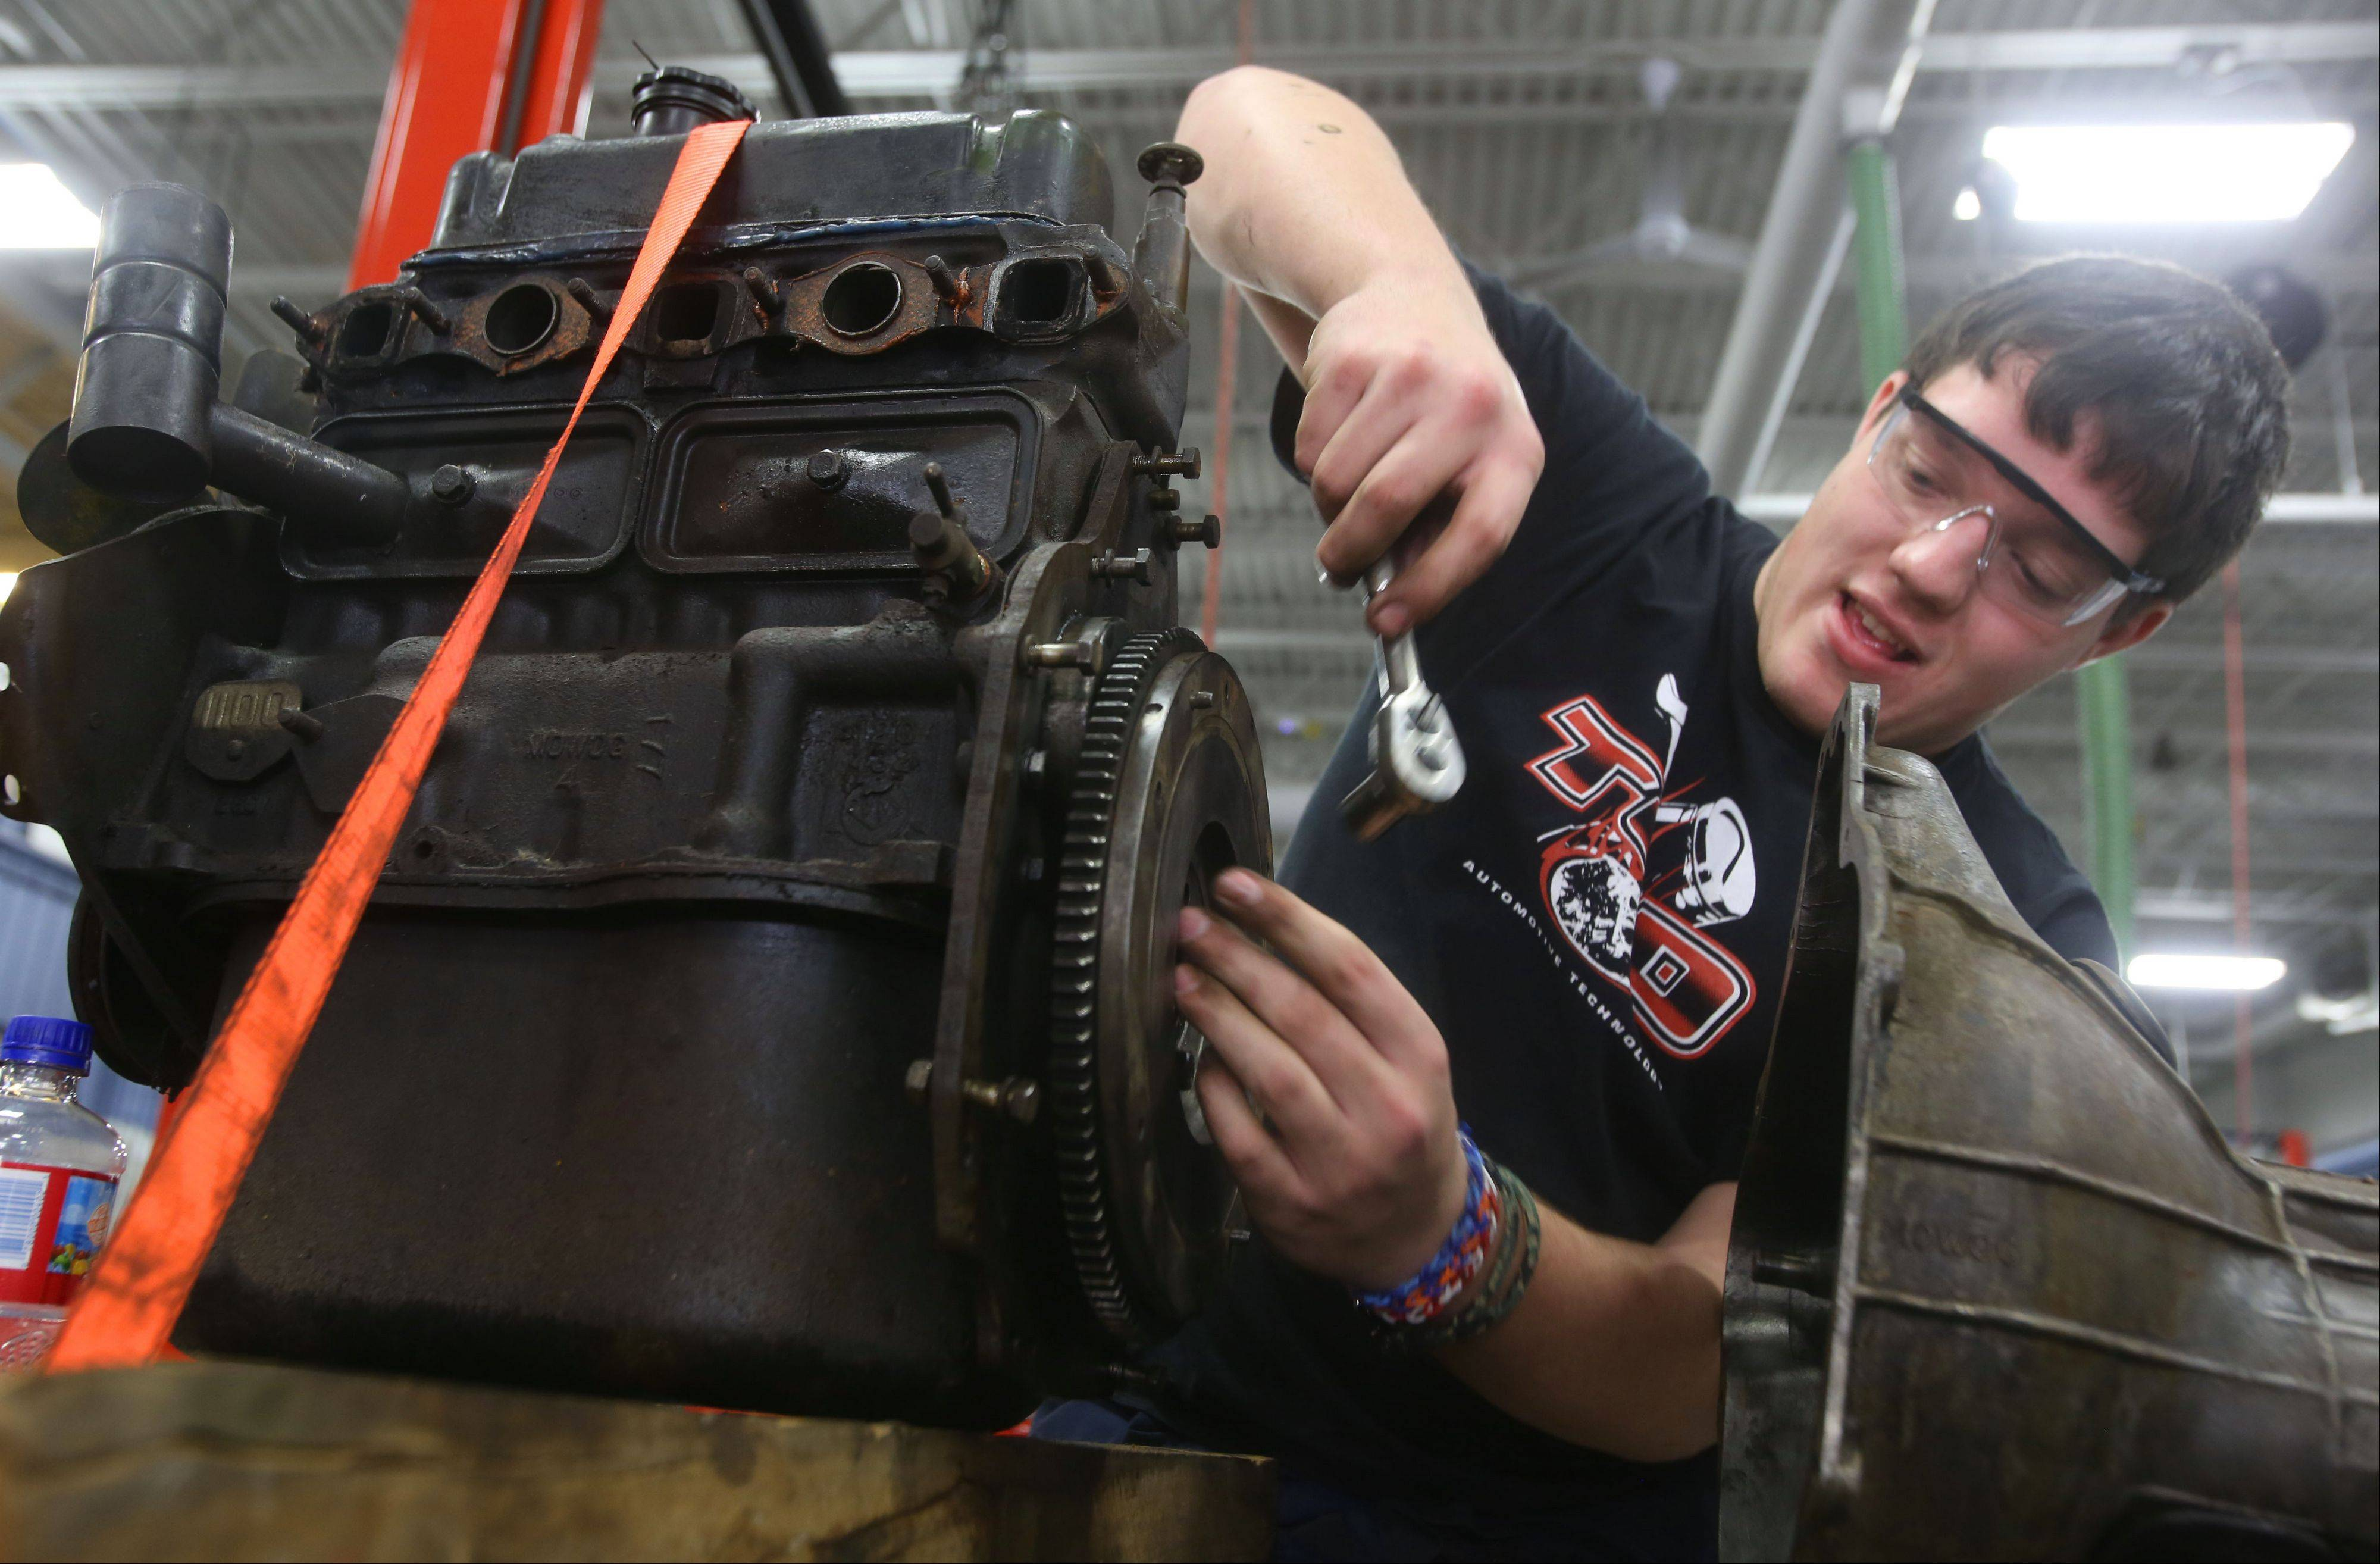 Automotive technology student Nathan Teske from Naperville Central High School works on the flywheel of his 1996 MG Midget in a class at the Technology Center of DuPage. Students are allowed to bring in their own vehicles to work on as long as the work fits what they are studying at the time.